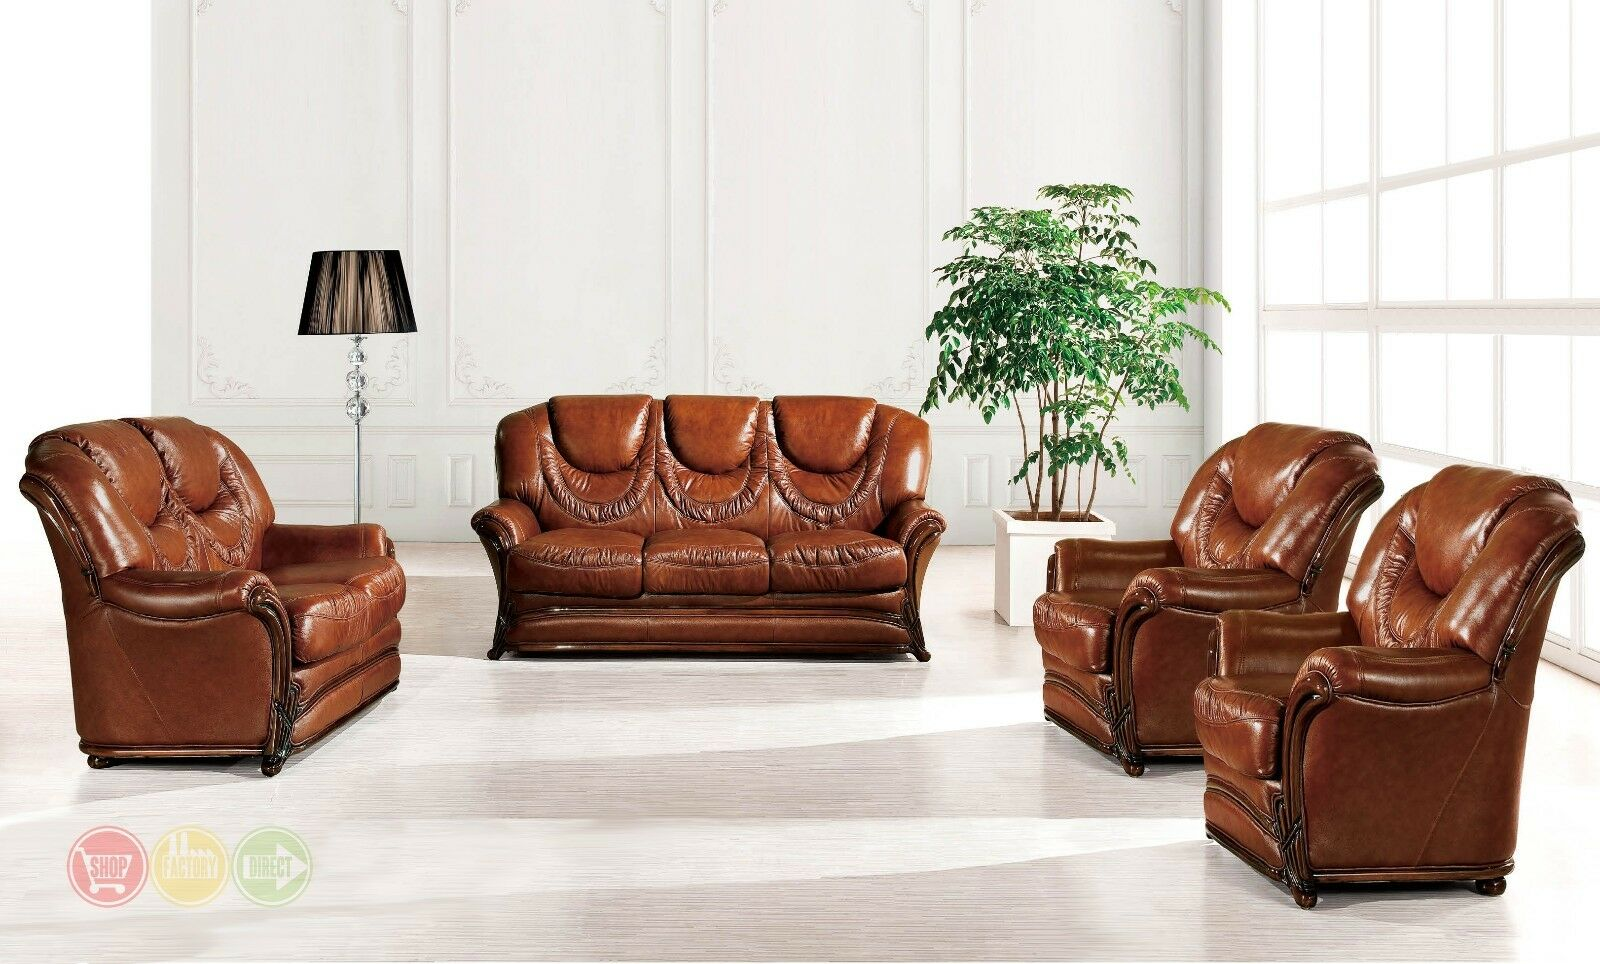 Details About Bella Italian Leather Sleeper Sofa Loveseat 2 Chairs 4pc Set Carved Wood Accents